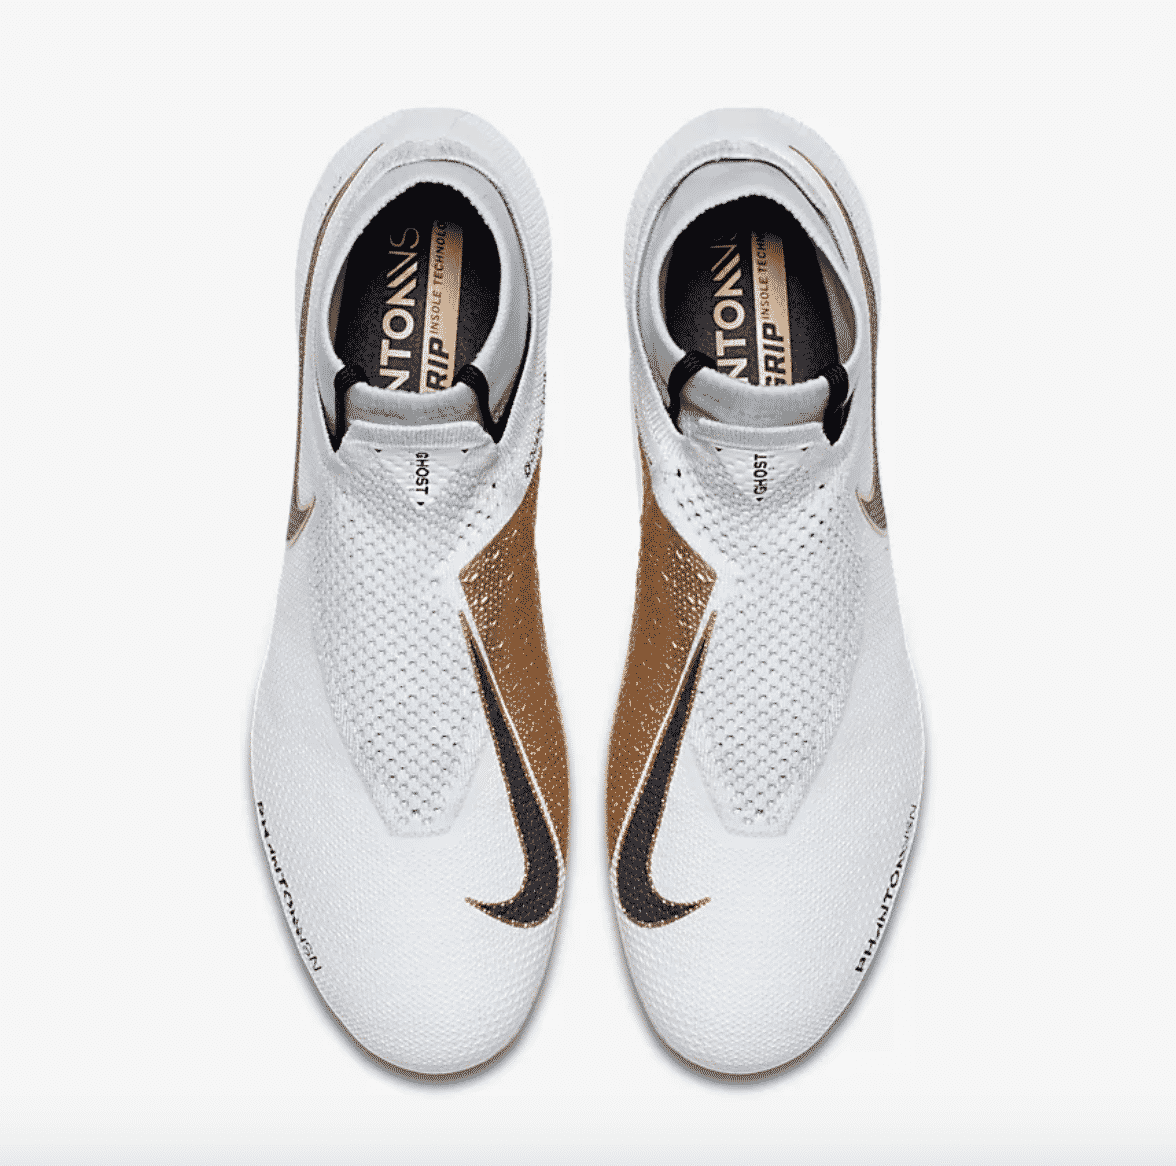 nike-phantom-vision-blanc-or-1